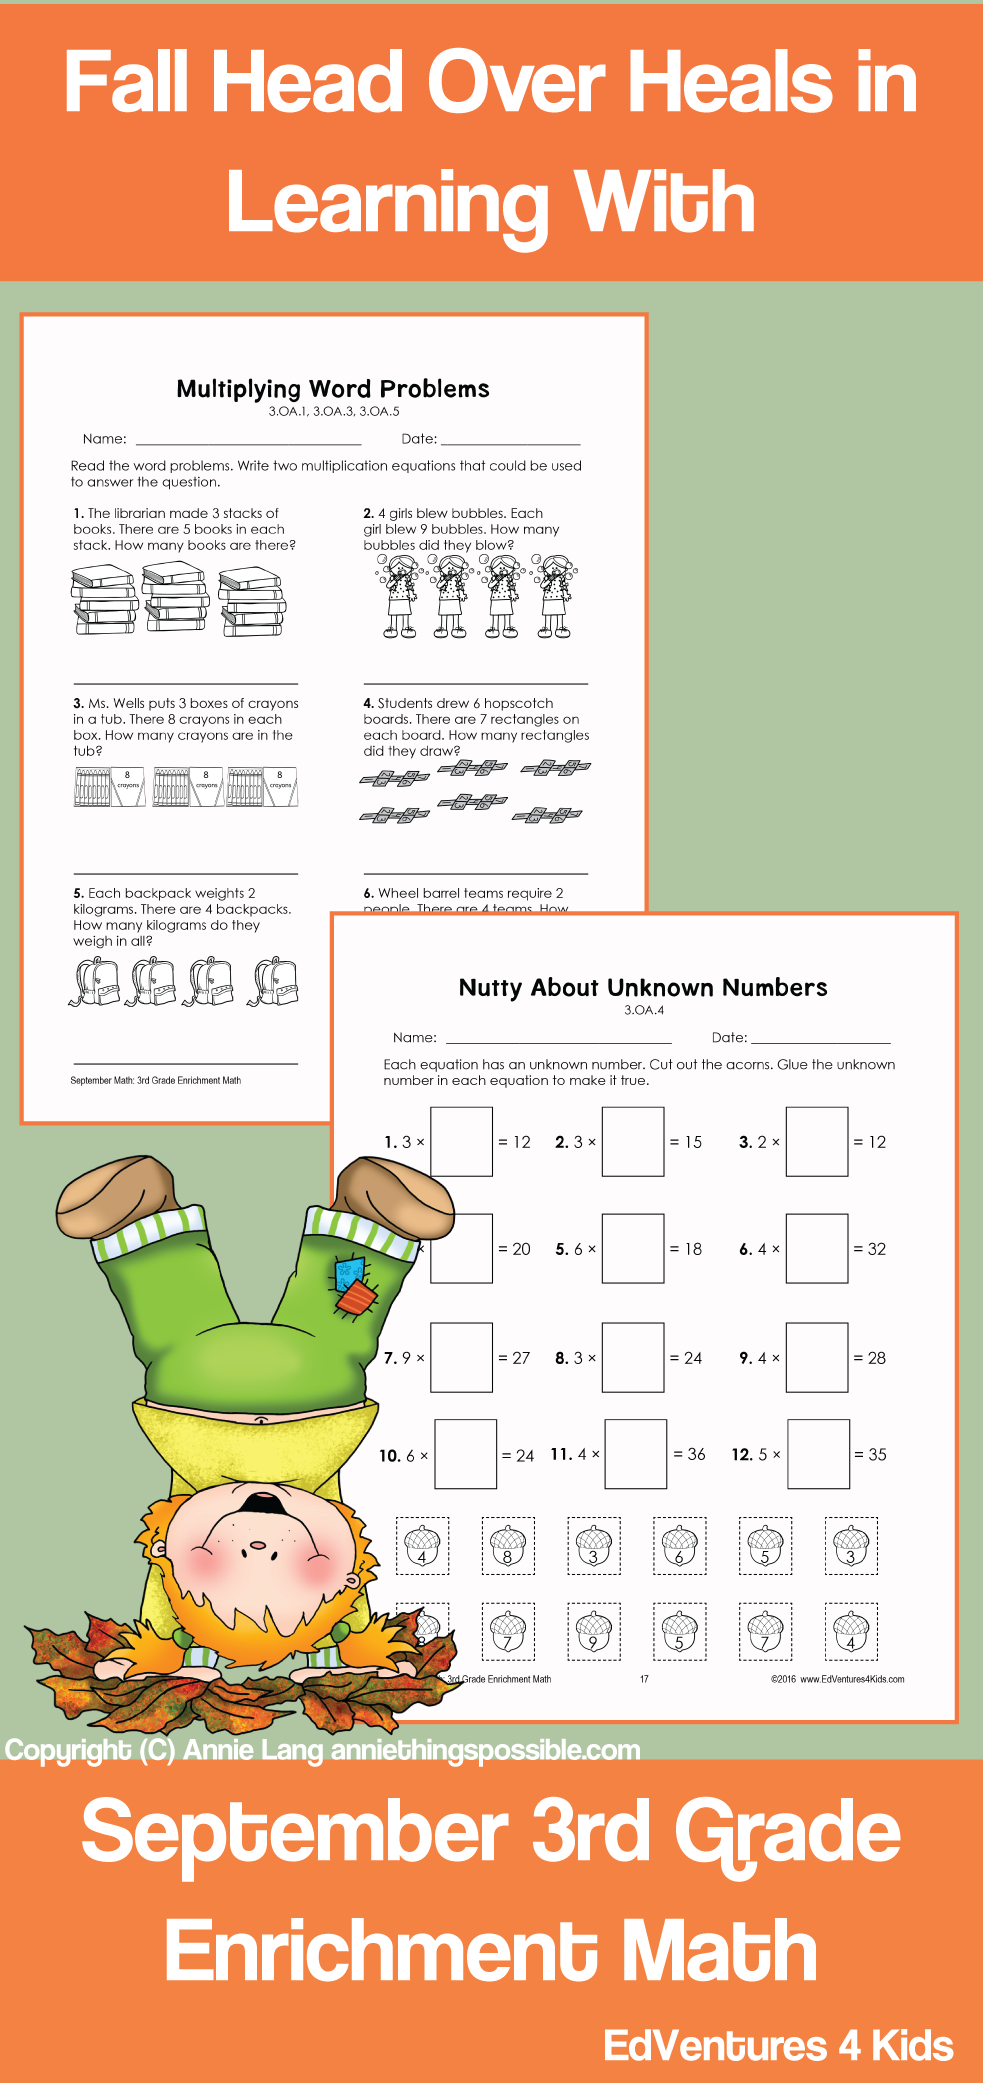 Luxury Enrichment Math Worksheets Image - Worksheet Math for ...